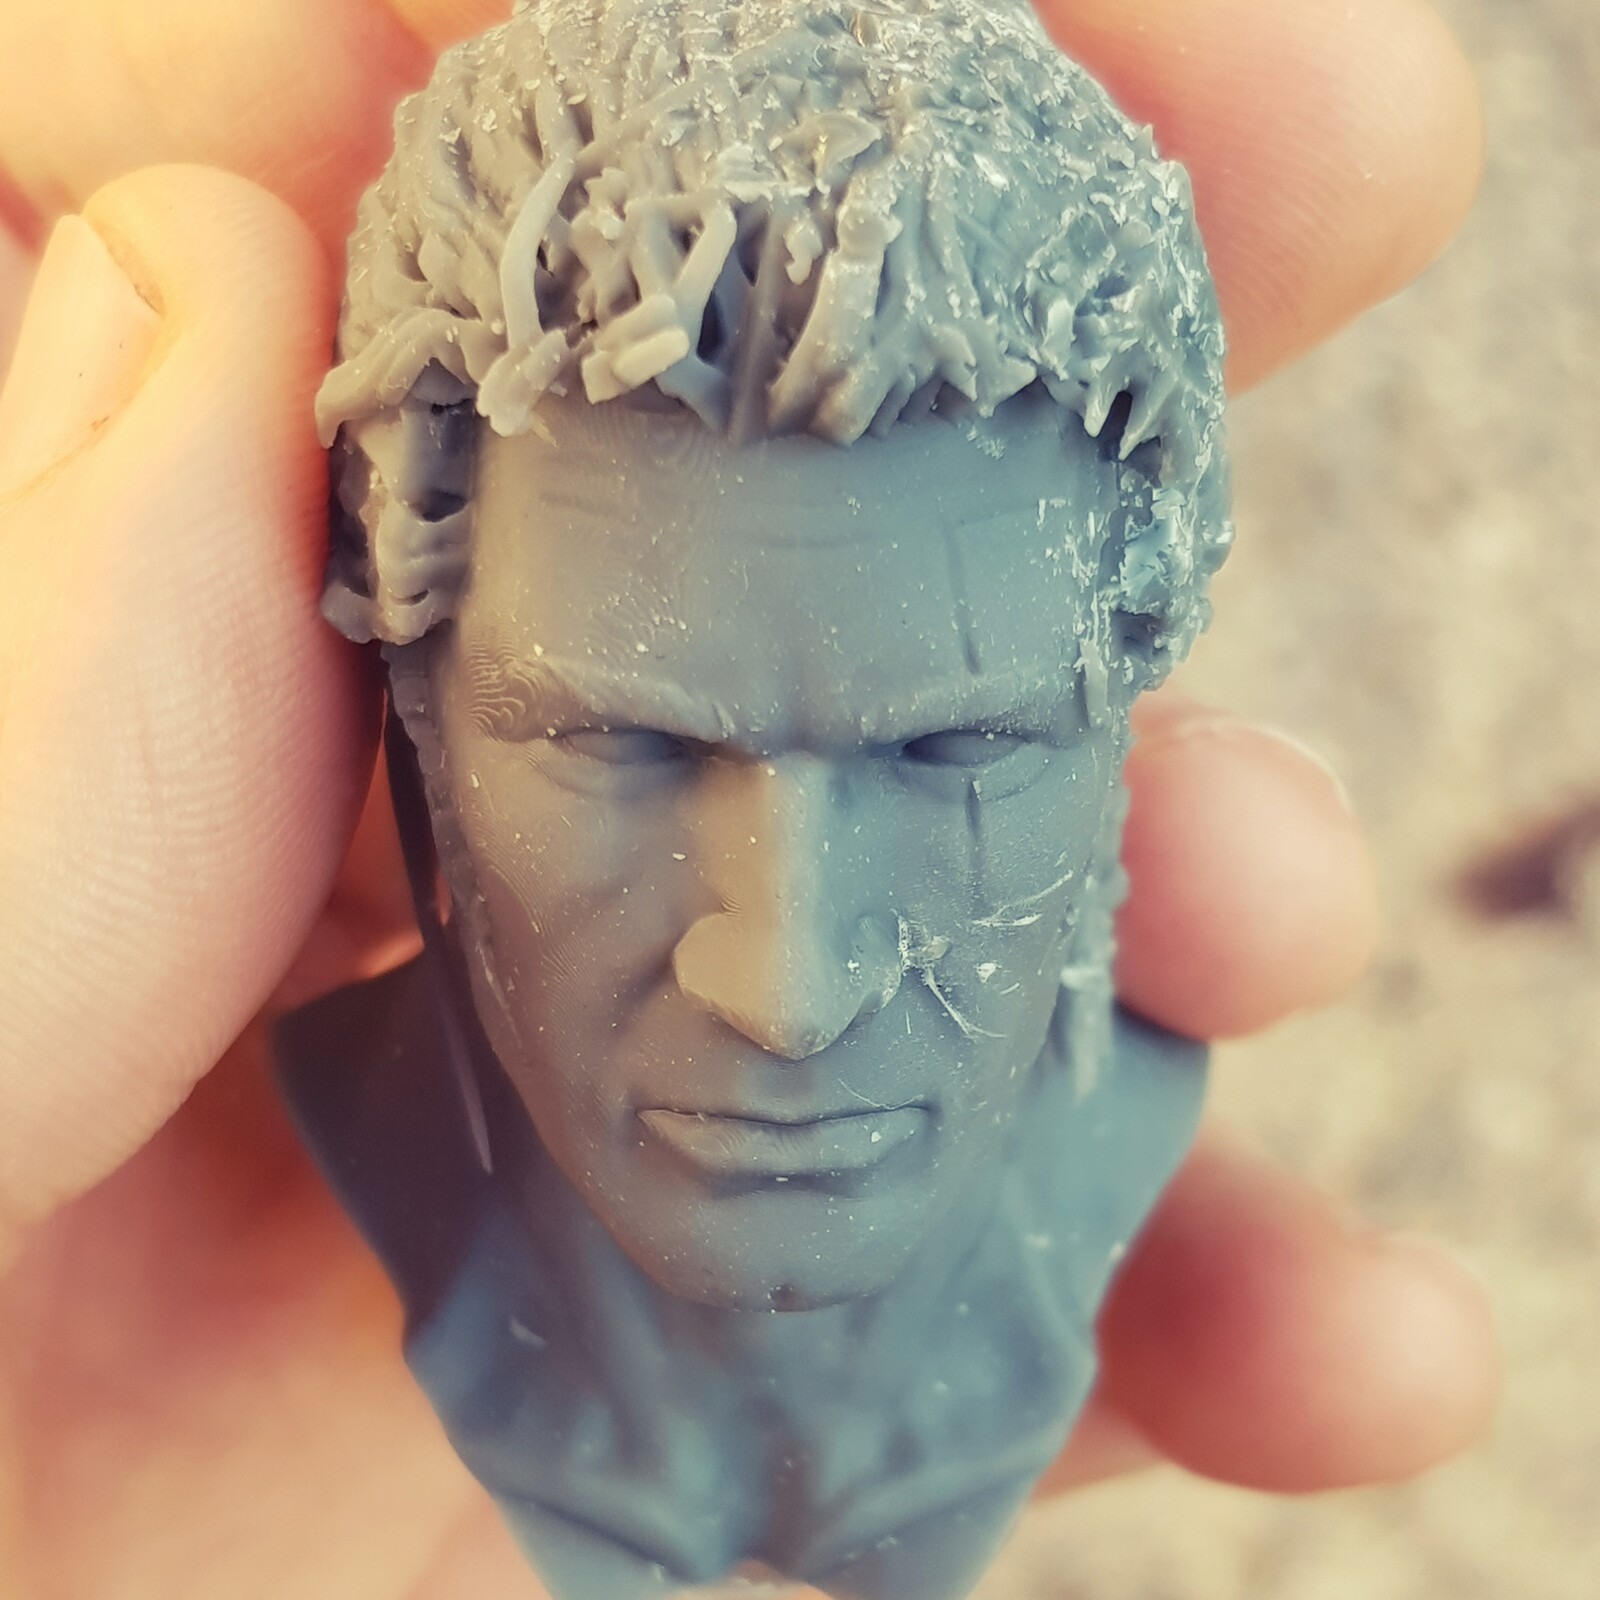 3D printed with Anycubic Photon